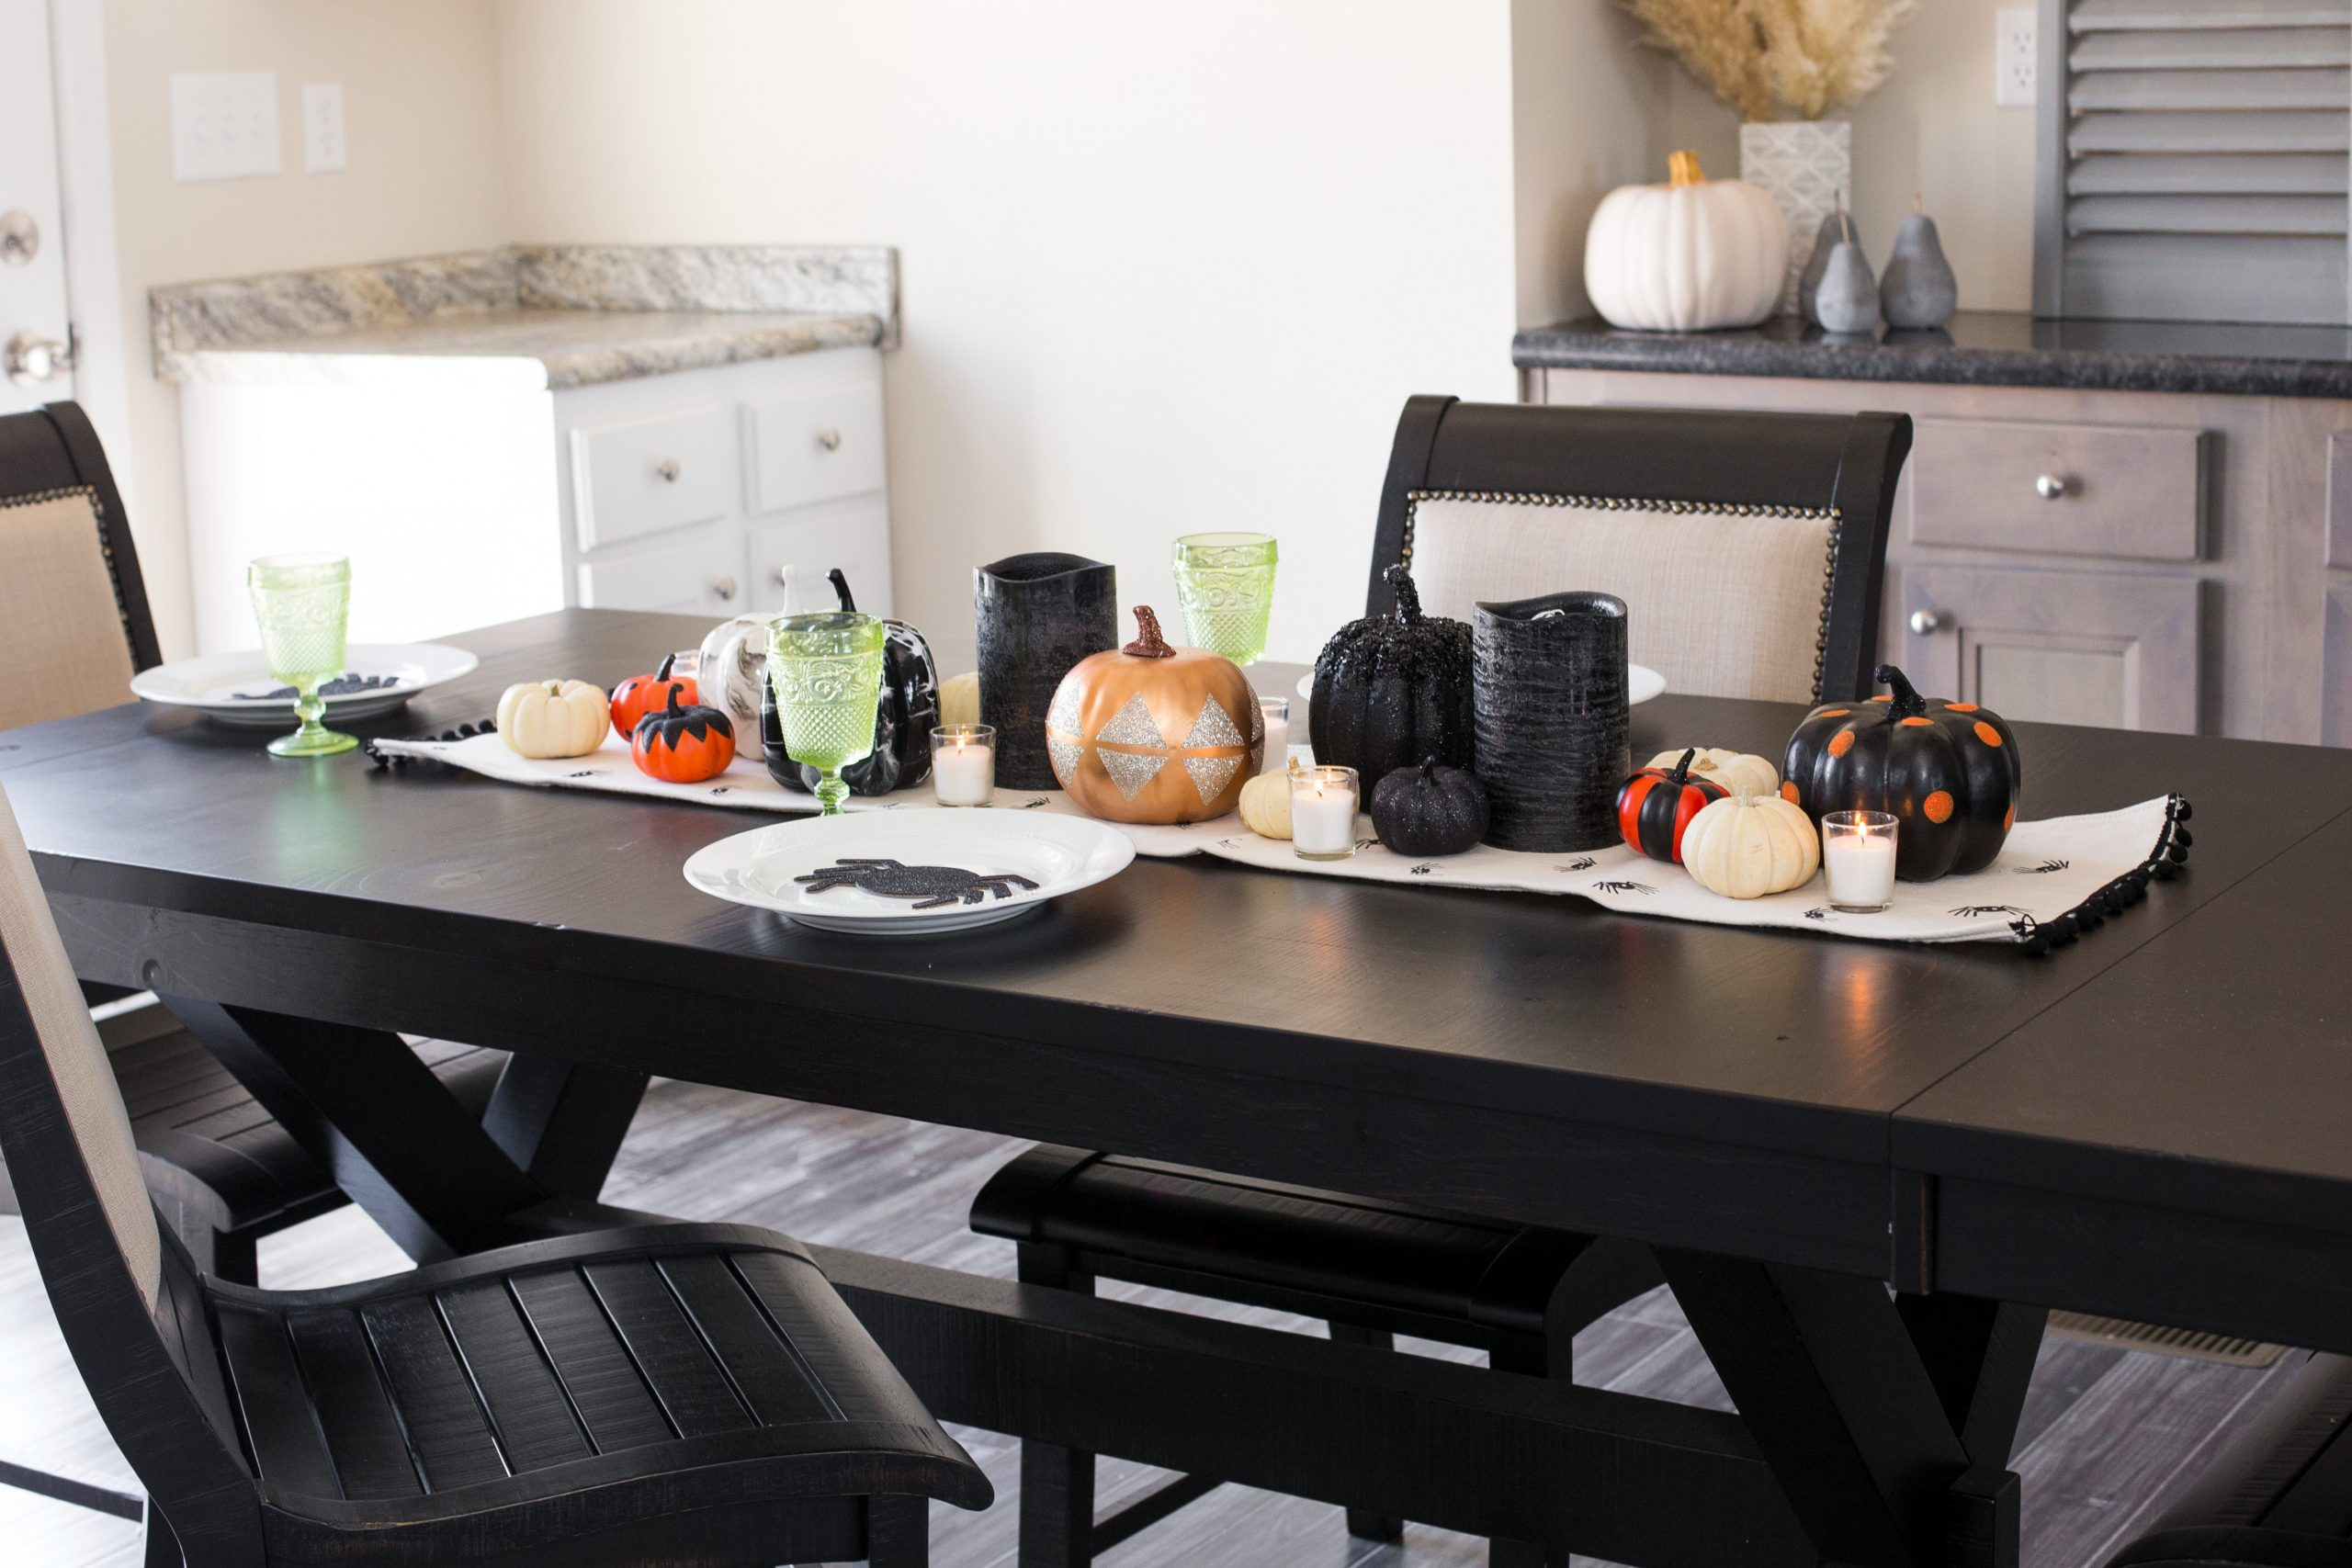 How to Decorate Your Dining Room Table for Fall on a Budget - Decorating Your Dining Room Ideas